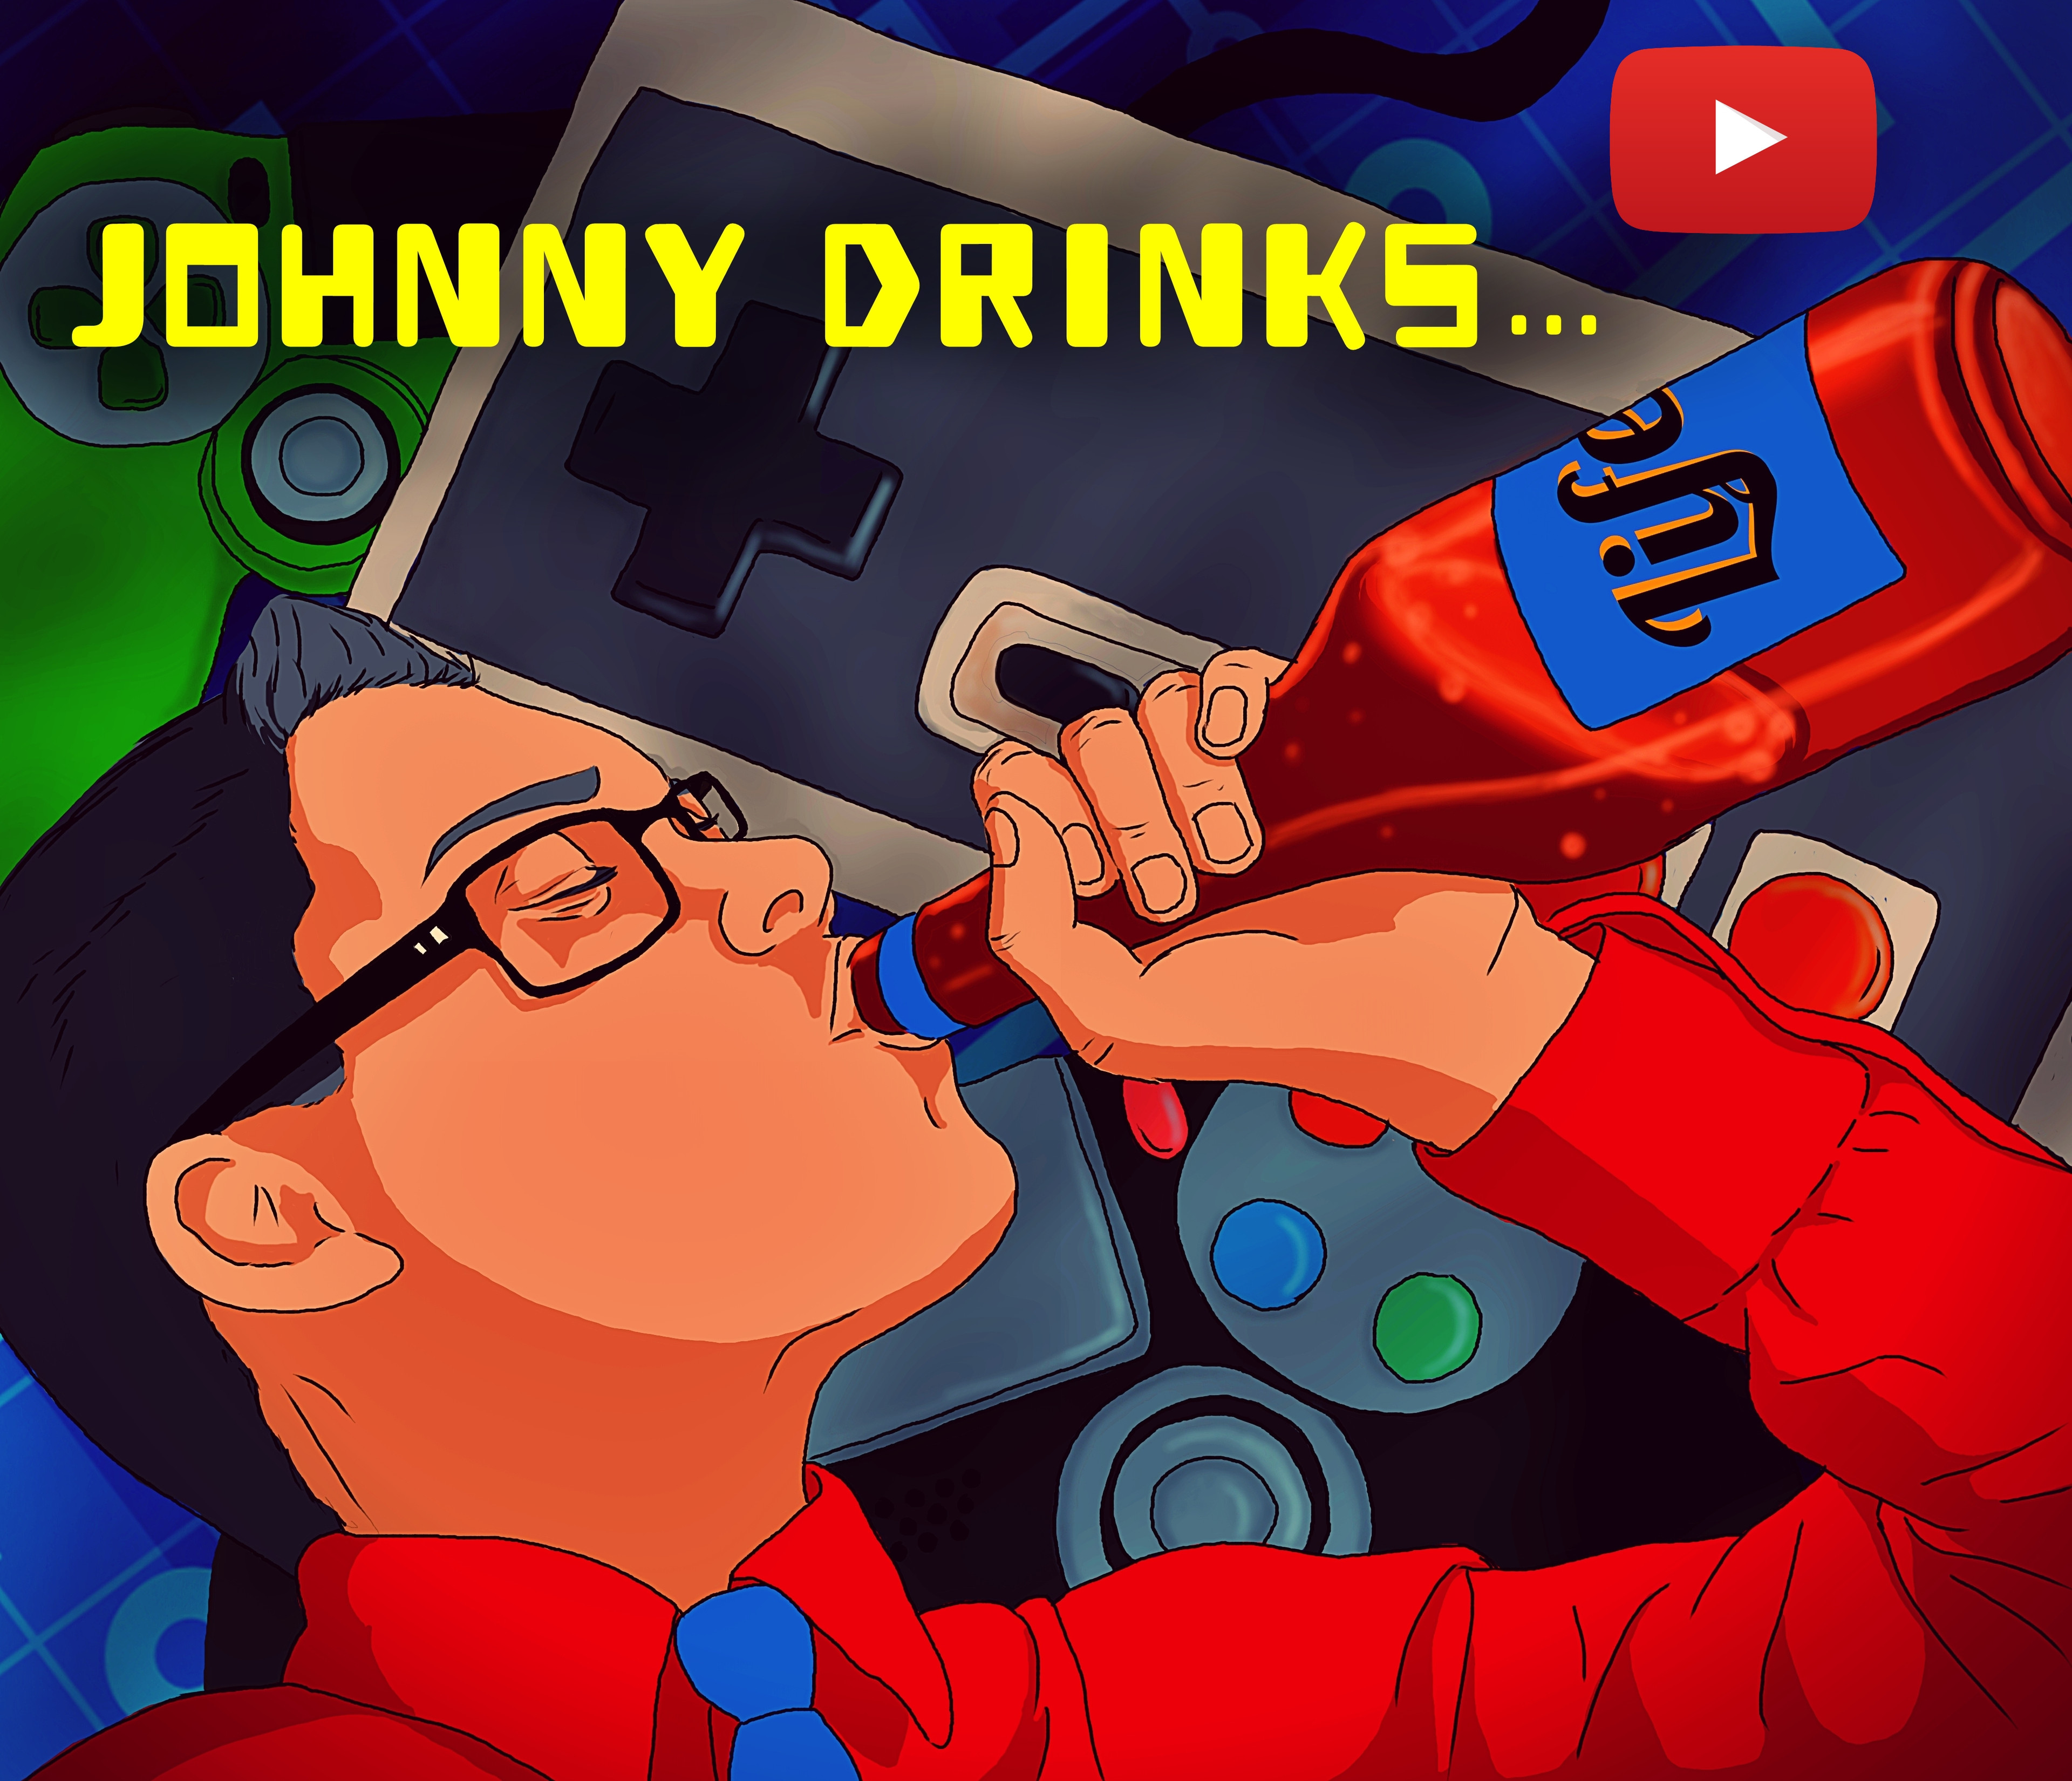 Digital illustration of my friend Johnny, made for his Youtube channel.